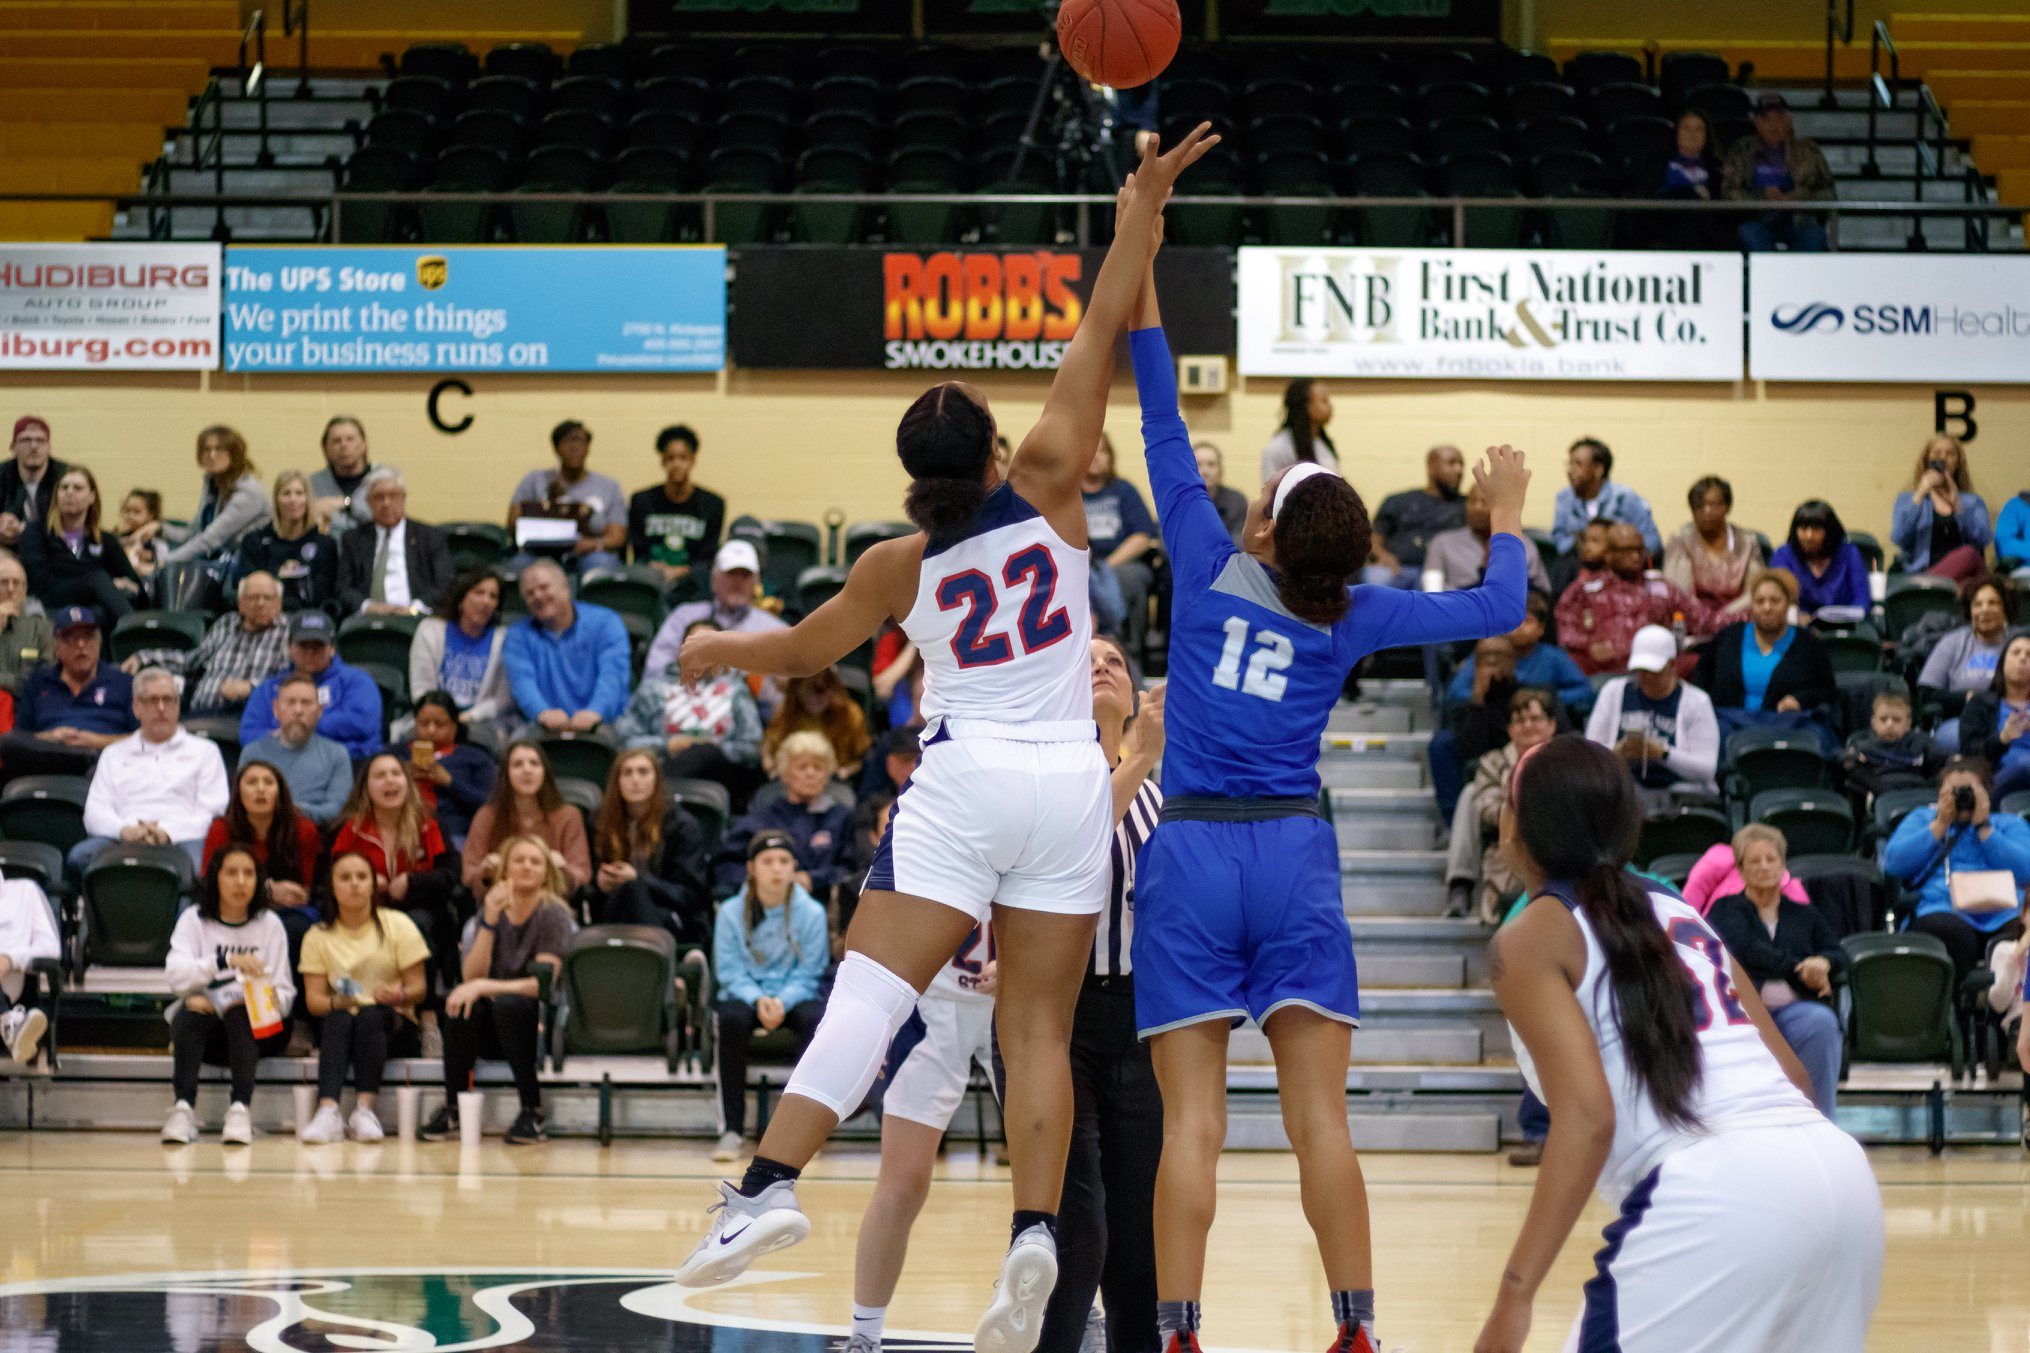 Murray State College women's basketball season ends in first round of regional playoffs